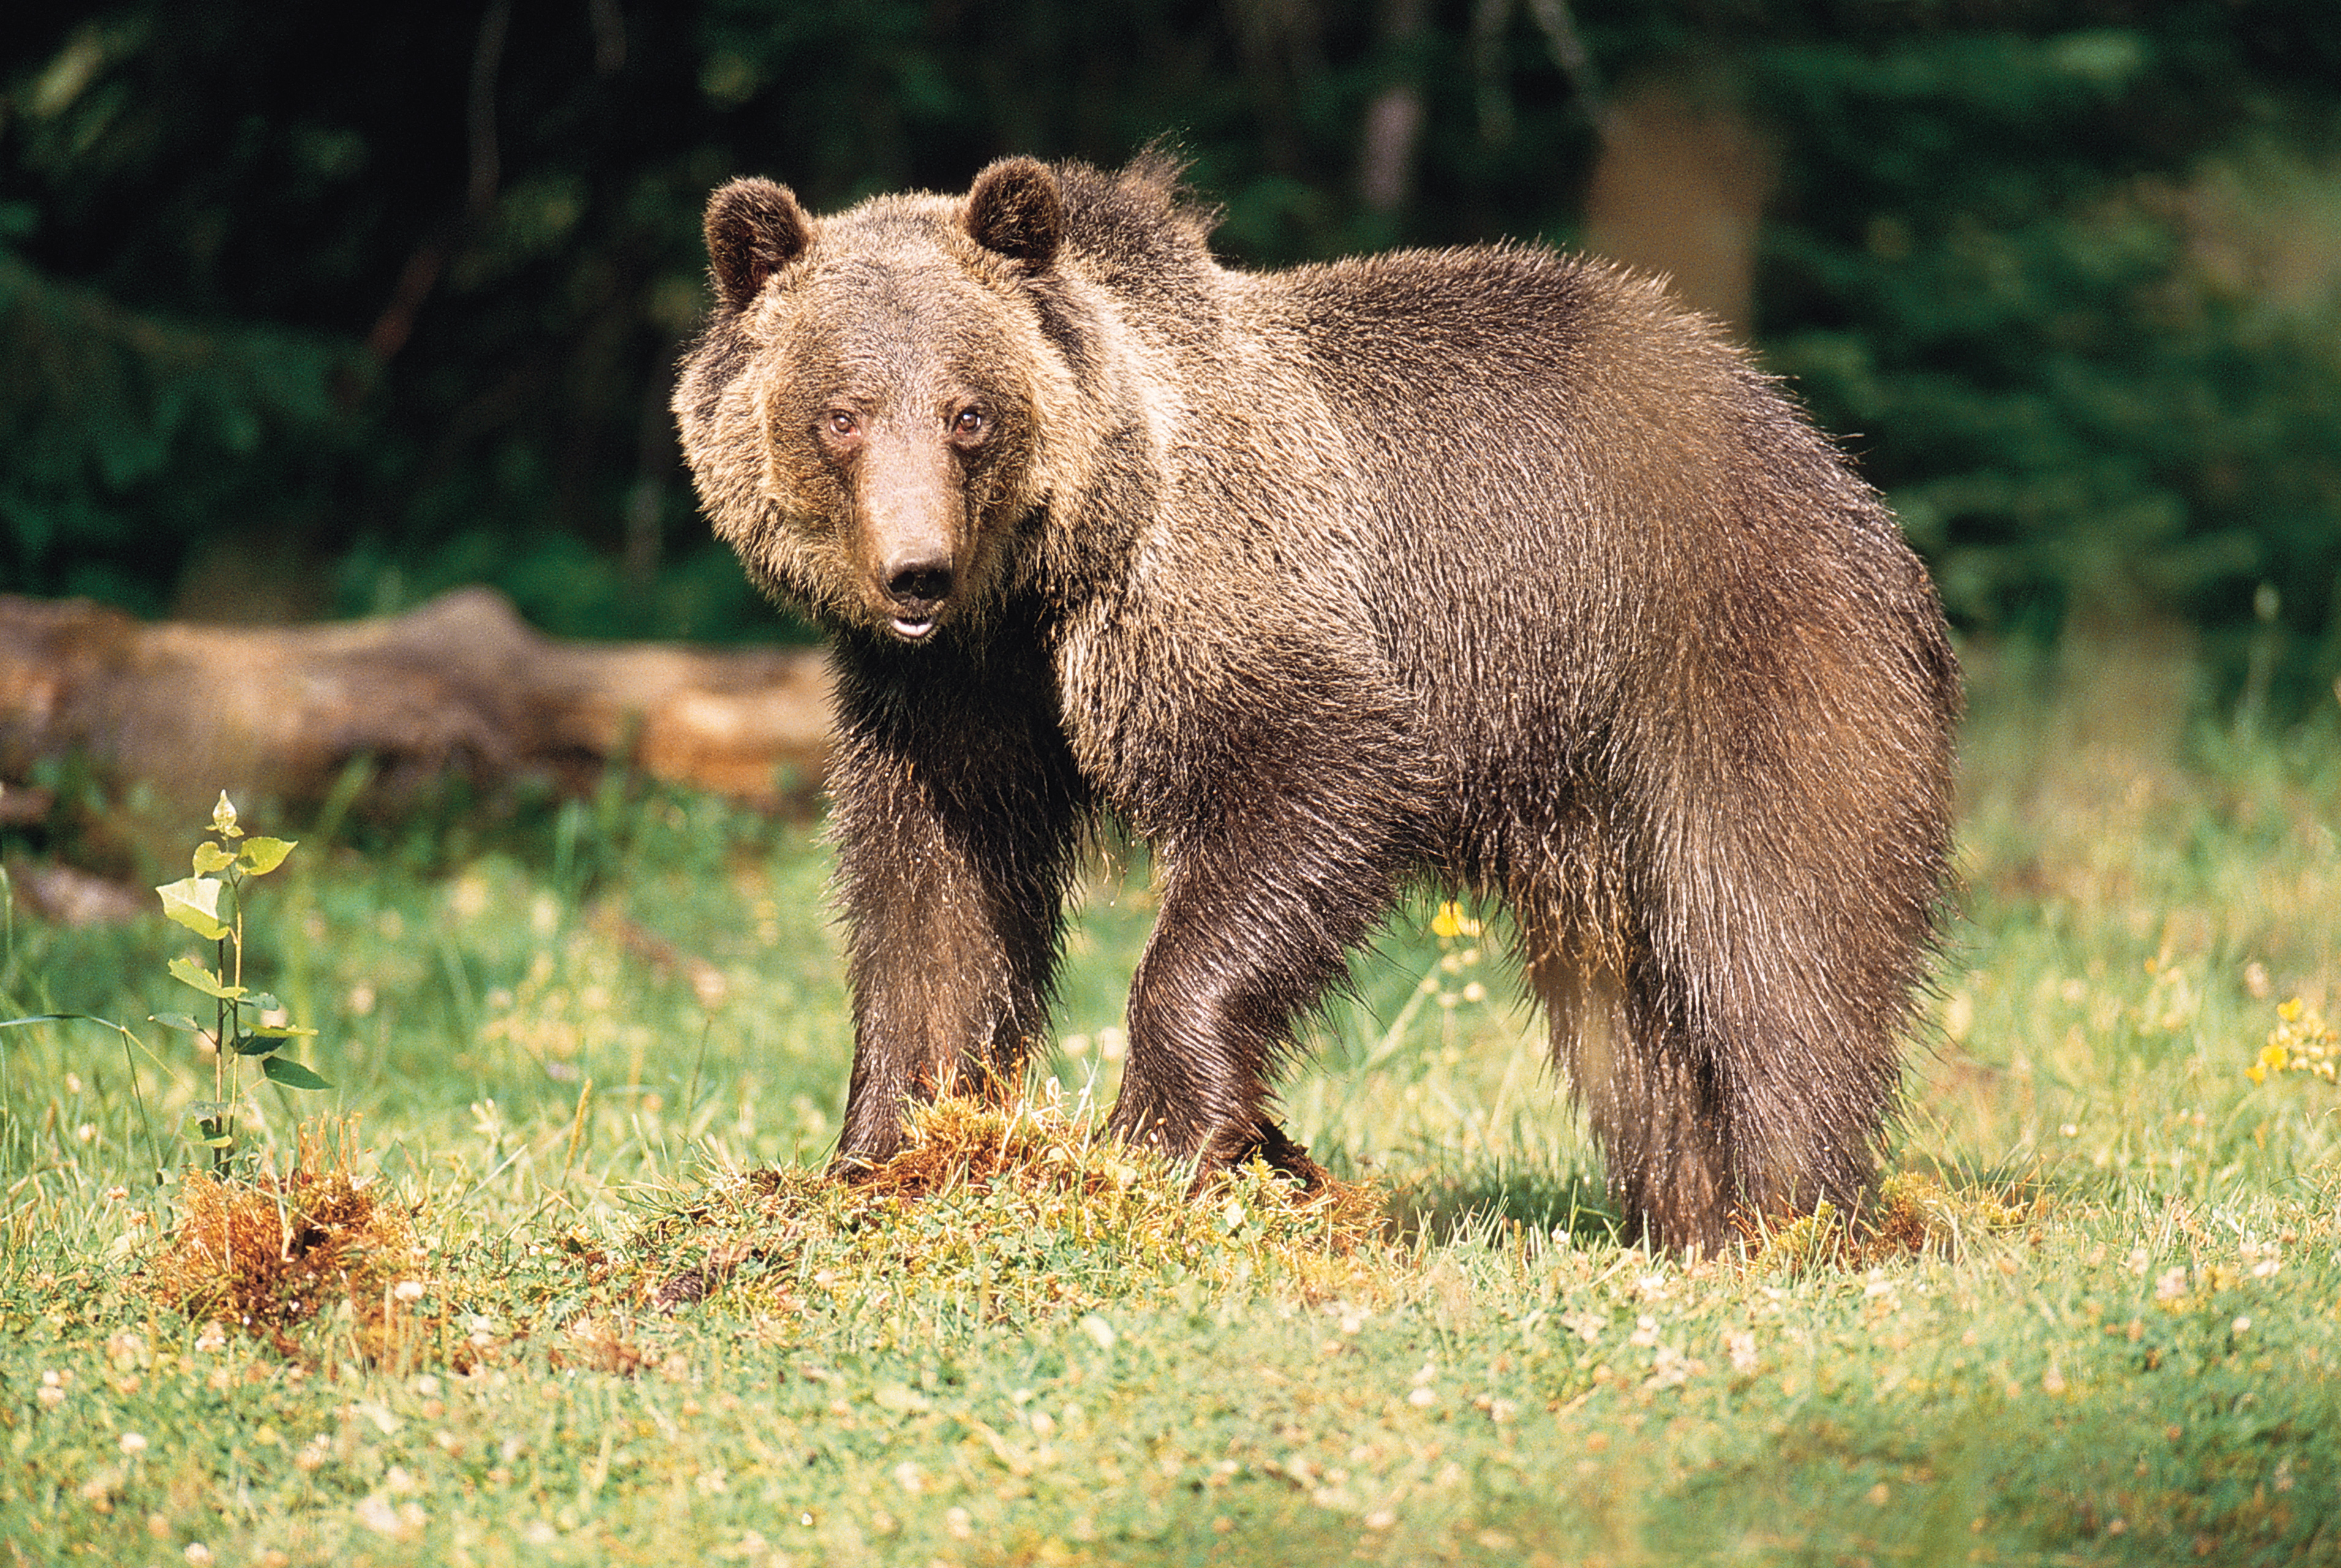 Montana is home to grizzy bears